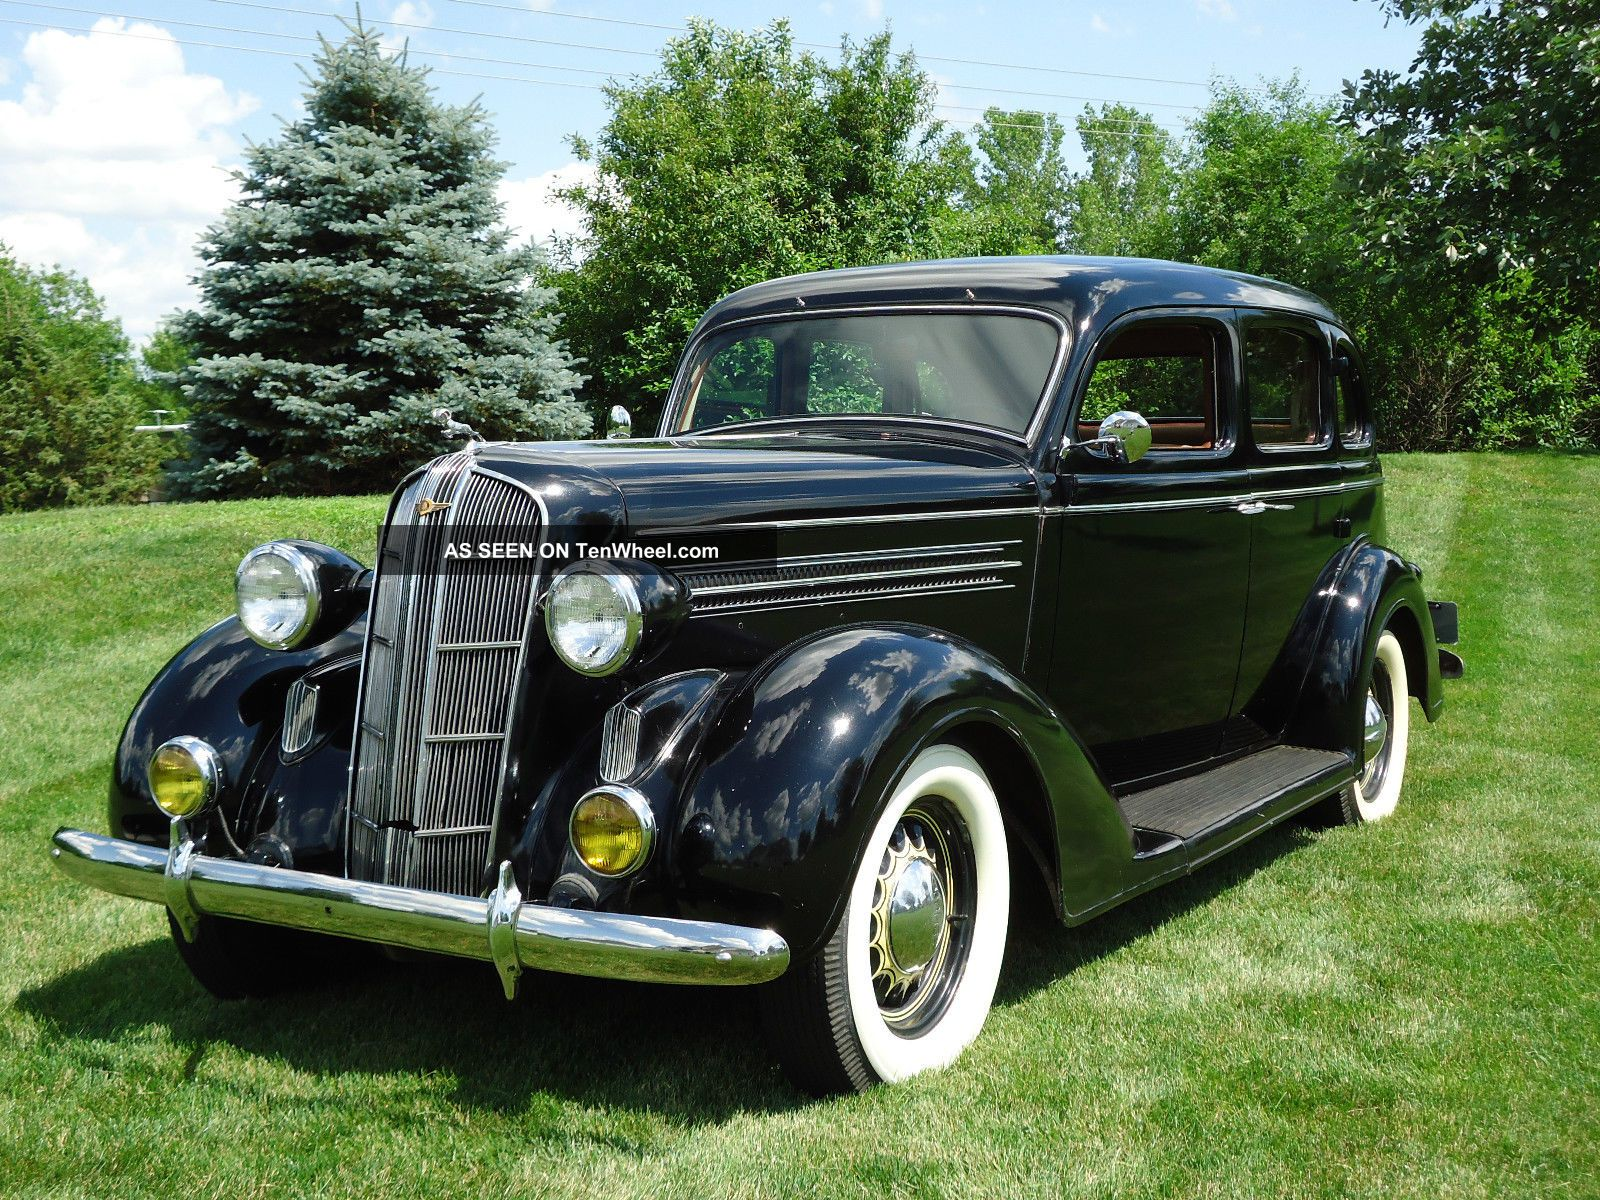 1936 dodge brothers d2 touring model sedan rh tenwheel com